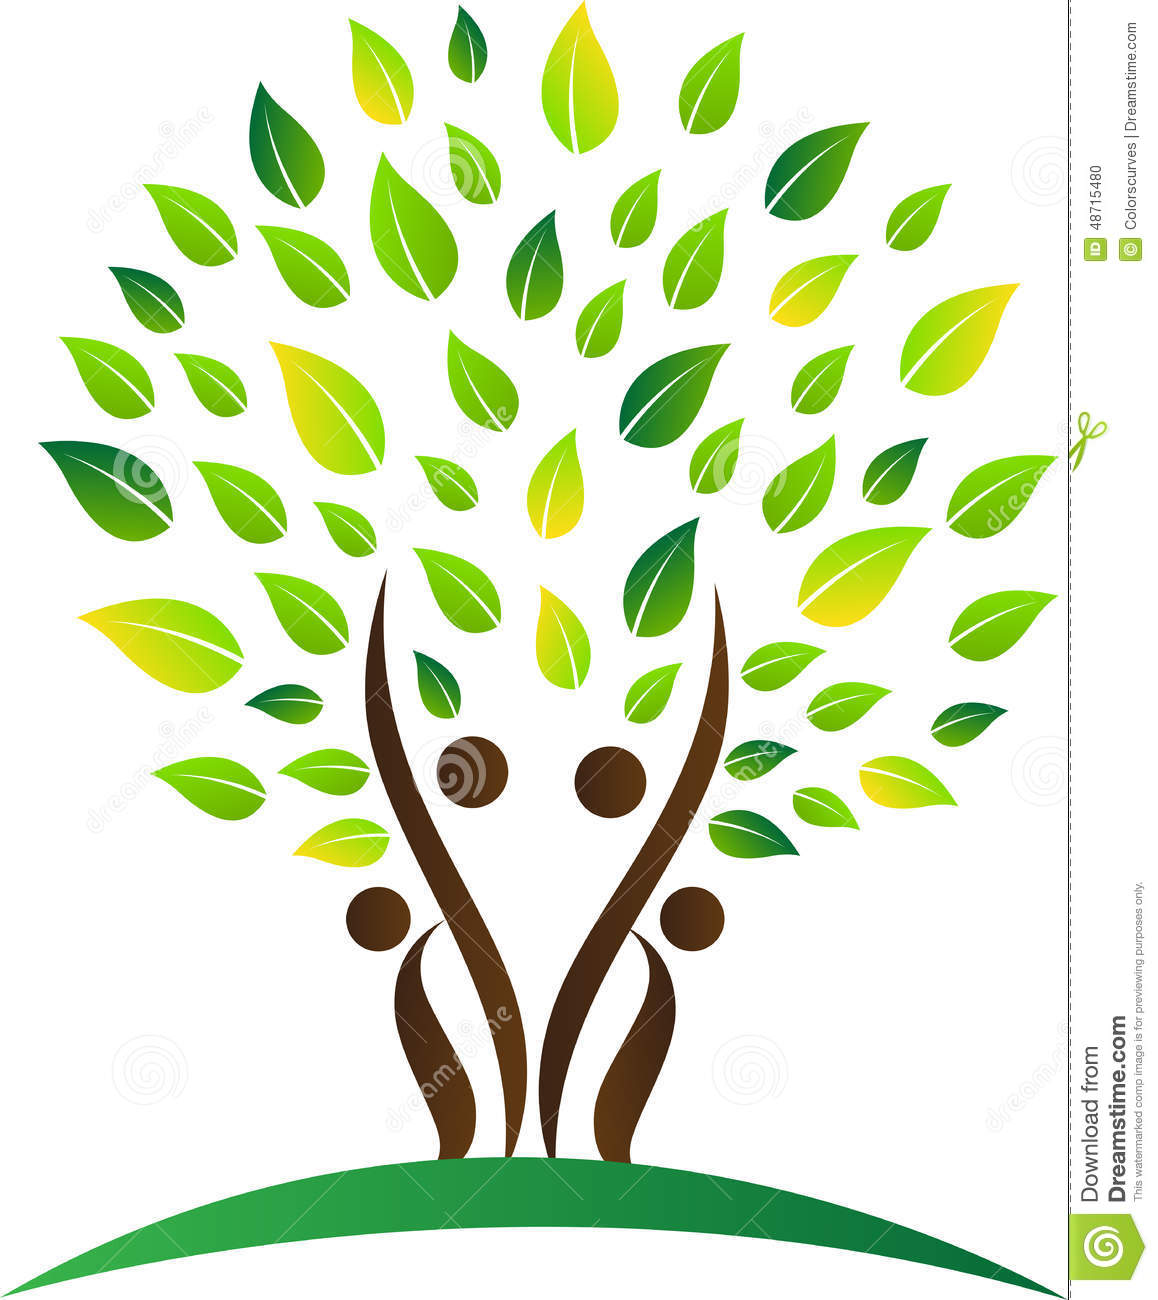 Stock Illustration Abstract Family Tree Vector Drawing Represents Design Image48715480 on arbol genealogico